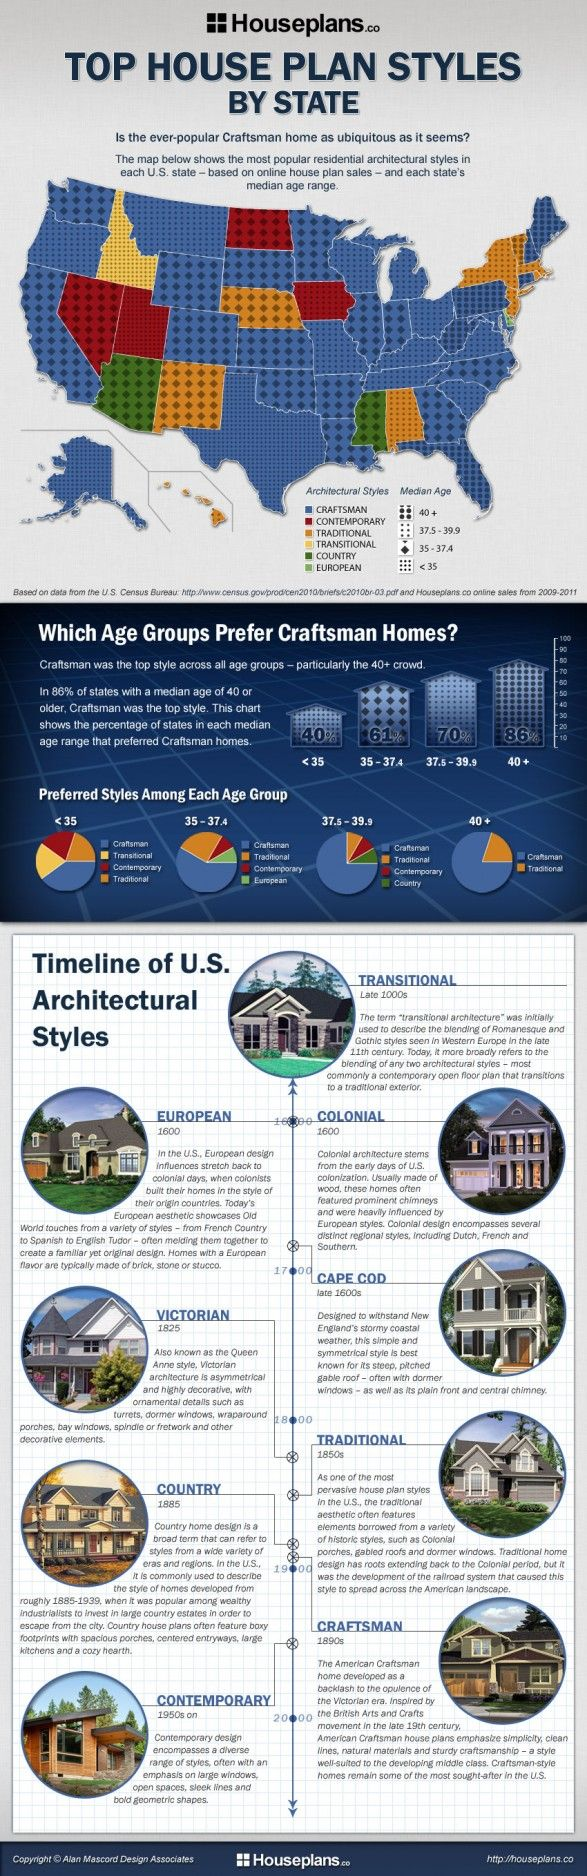 Very interesting info to share about Home Design Trends: Craftsman Houses, Craftsman Home, Houses Style, Tops Houses Plans Style By St., Craftsman Style, American Houses, Architecture Style, States Infographic, House Plans